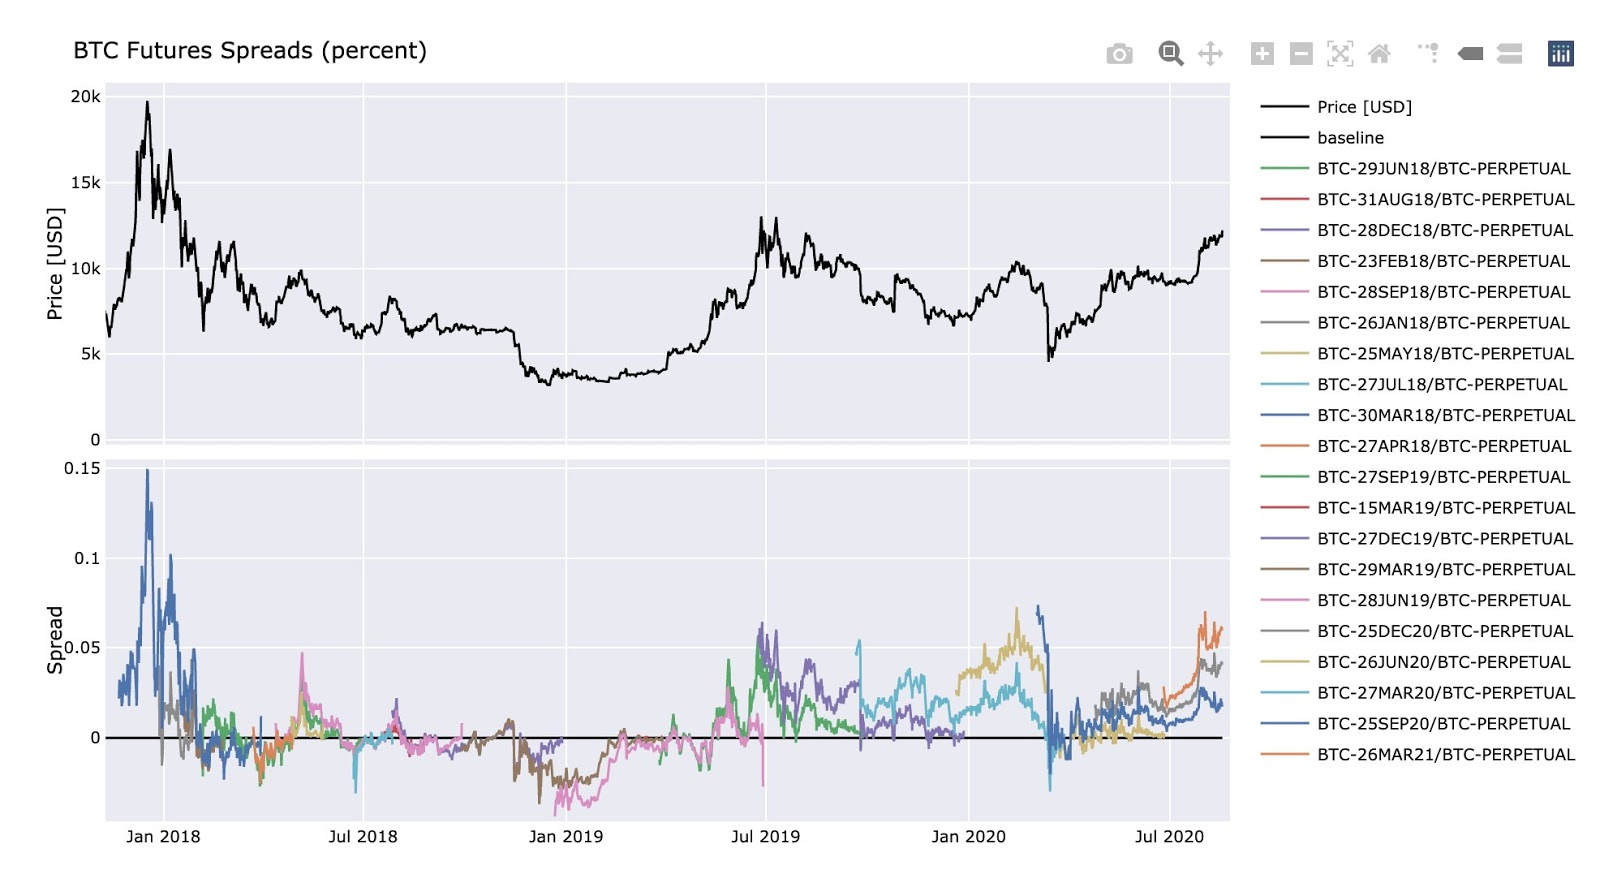 Bitcoin futures spreads since December 2017 launch